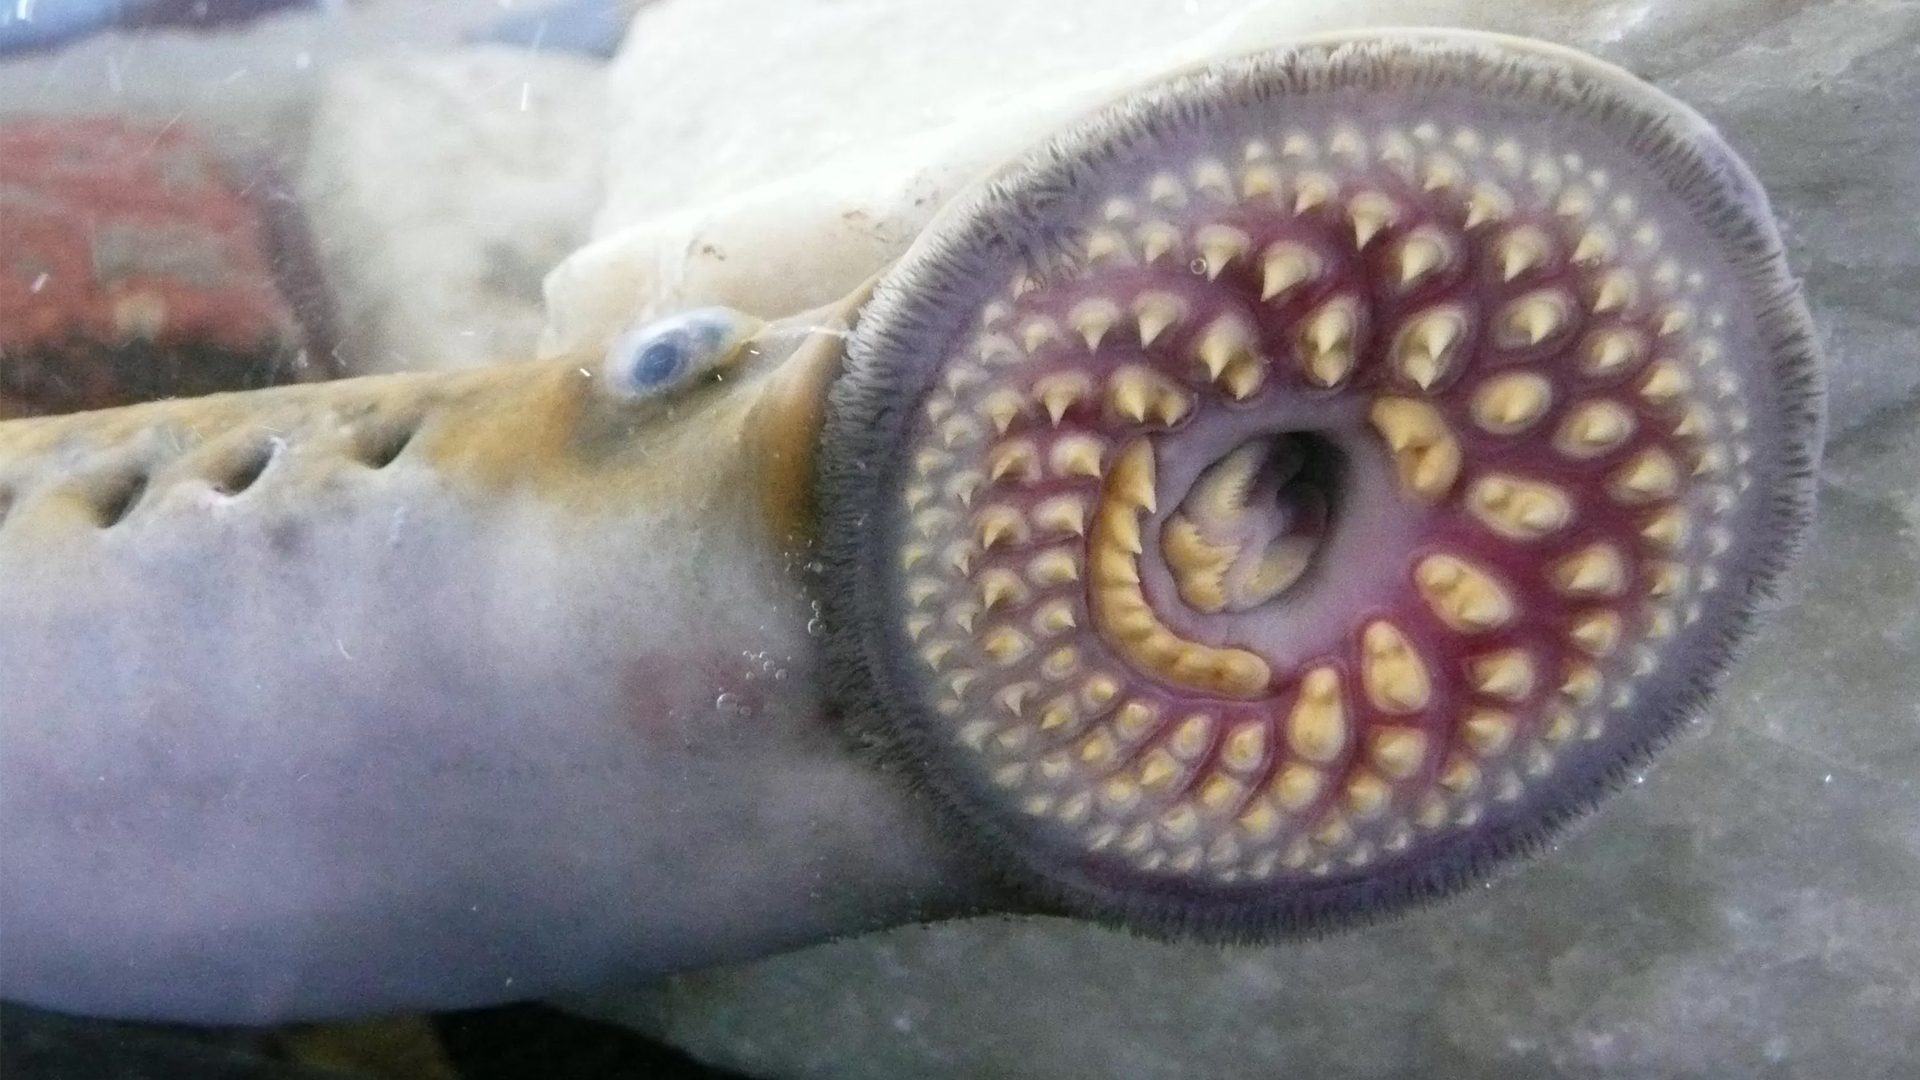 Lamprey Bite Sea Lamprey Human Attack Excellent Sea Lamprey Human